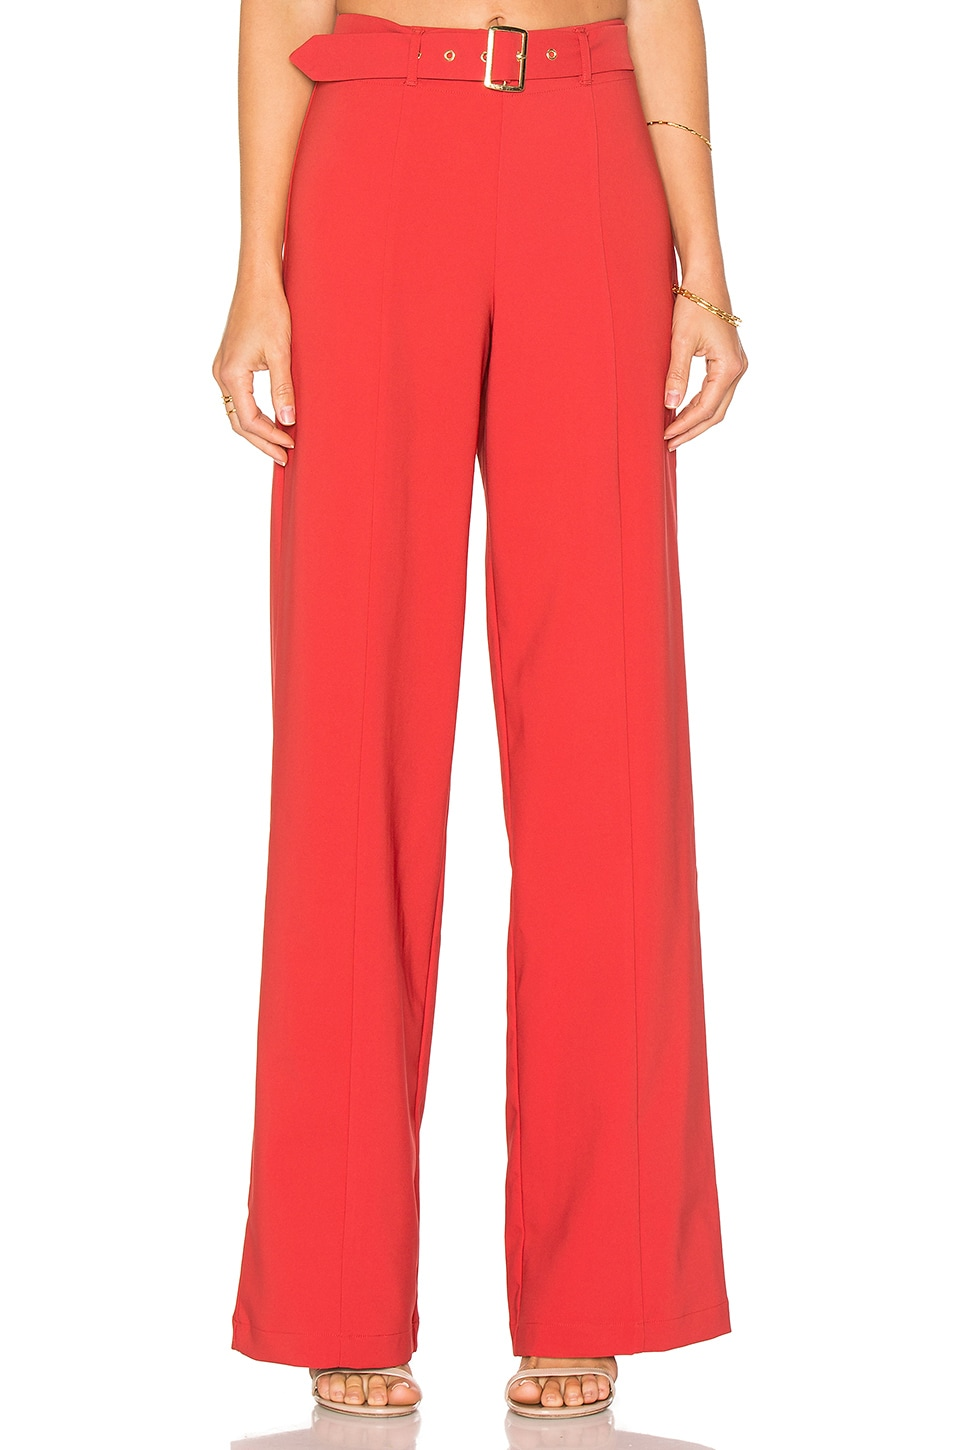 Lovers + Friends x REVOLVE Angeli Pants in Paprika